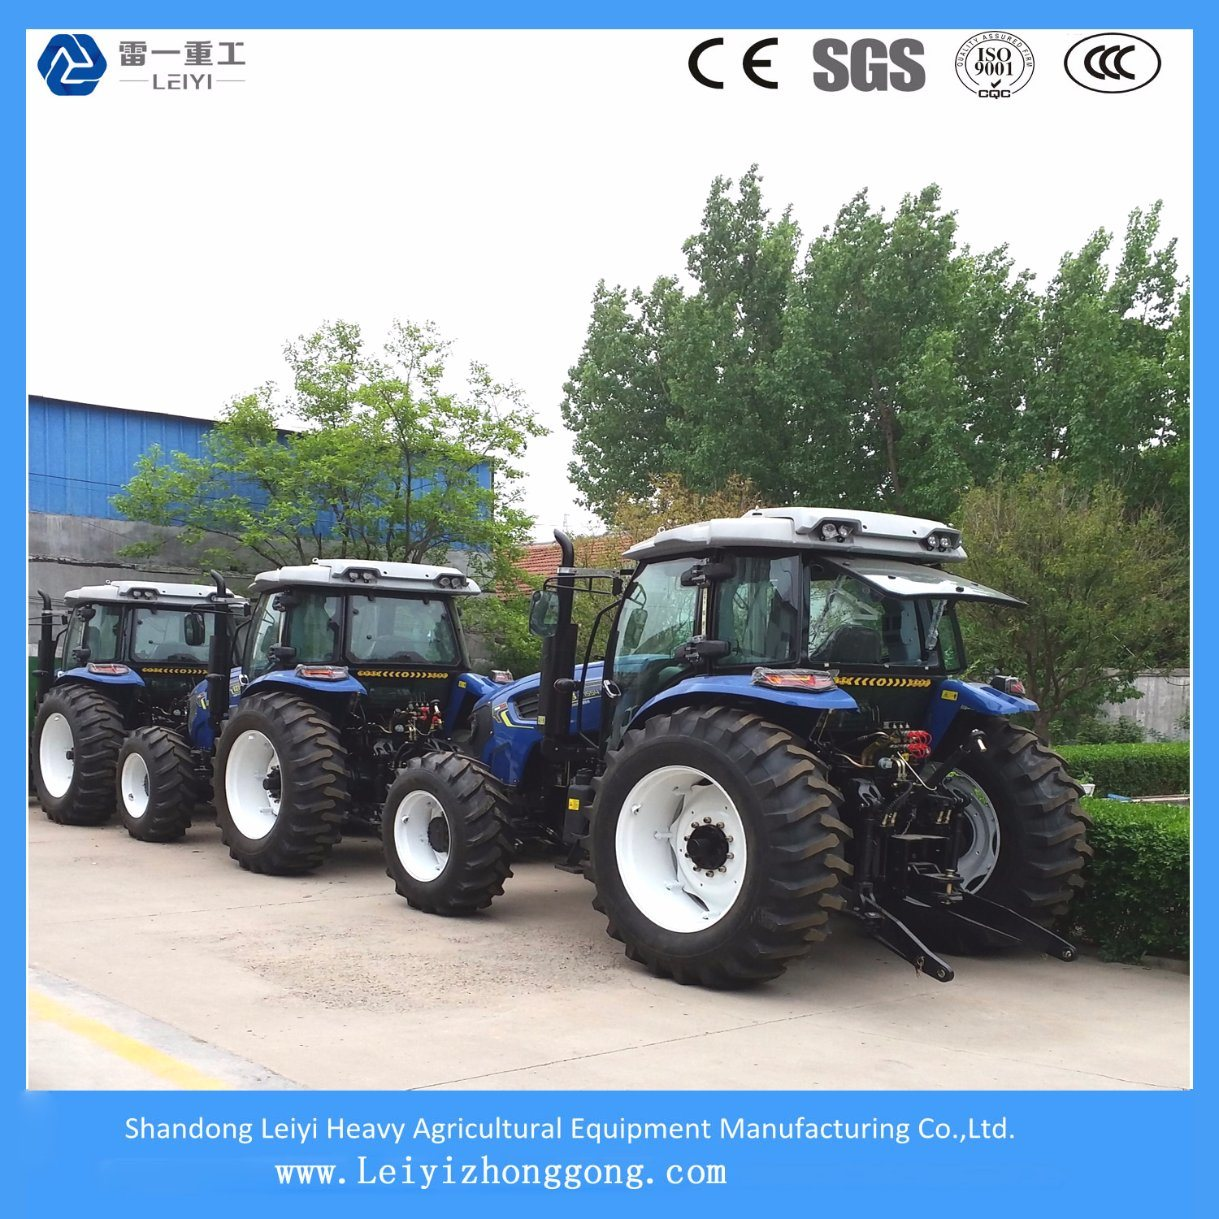 Supplying Multiple Agricultural Farming Tractor 140HP/155HP with 4WD